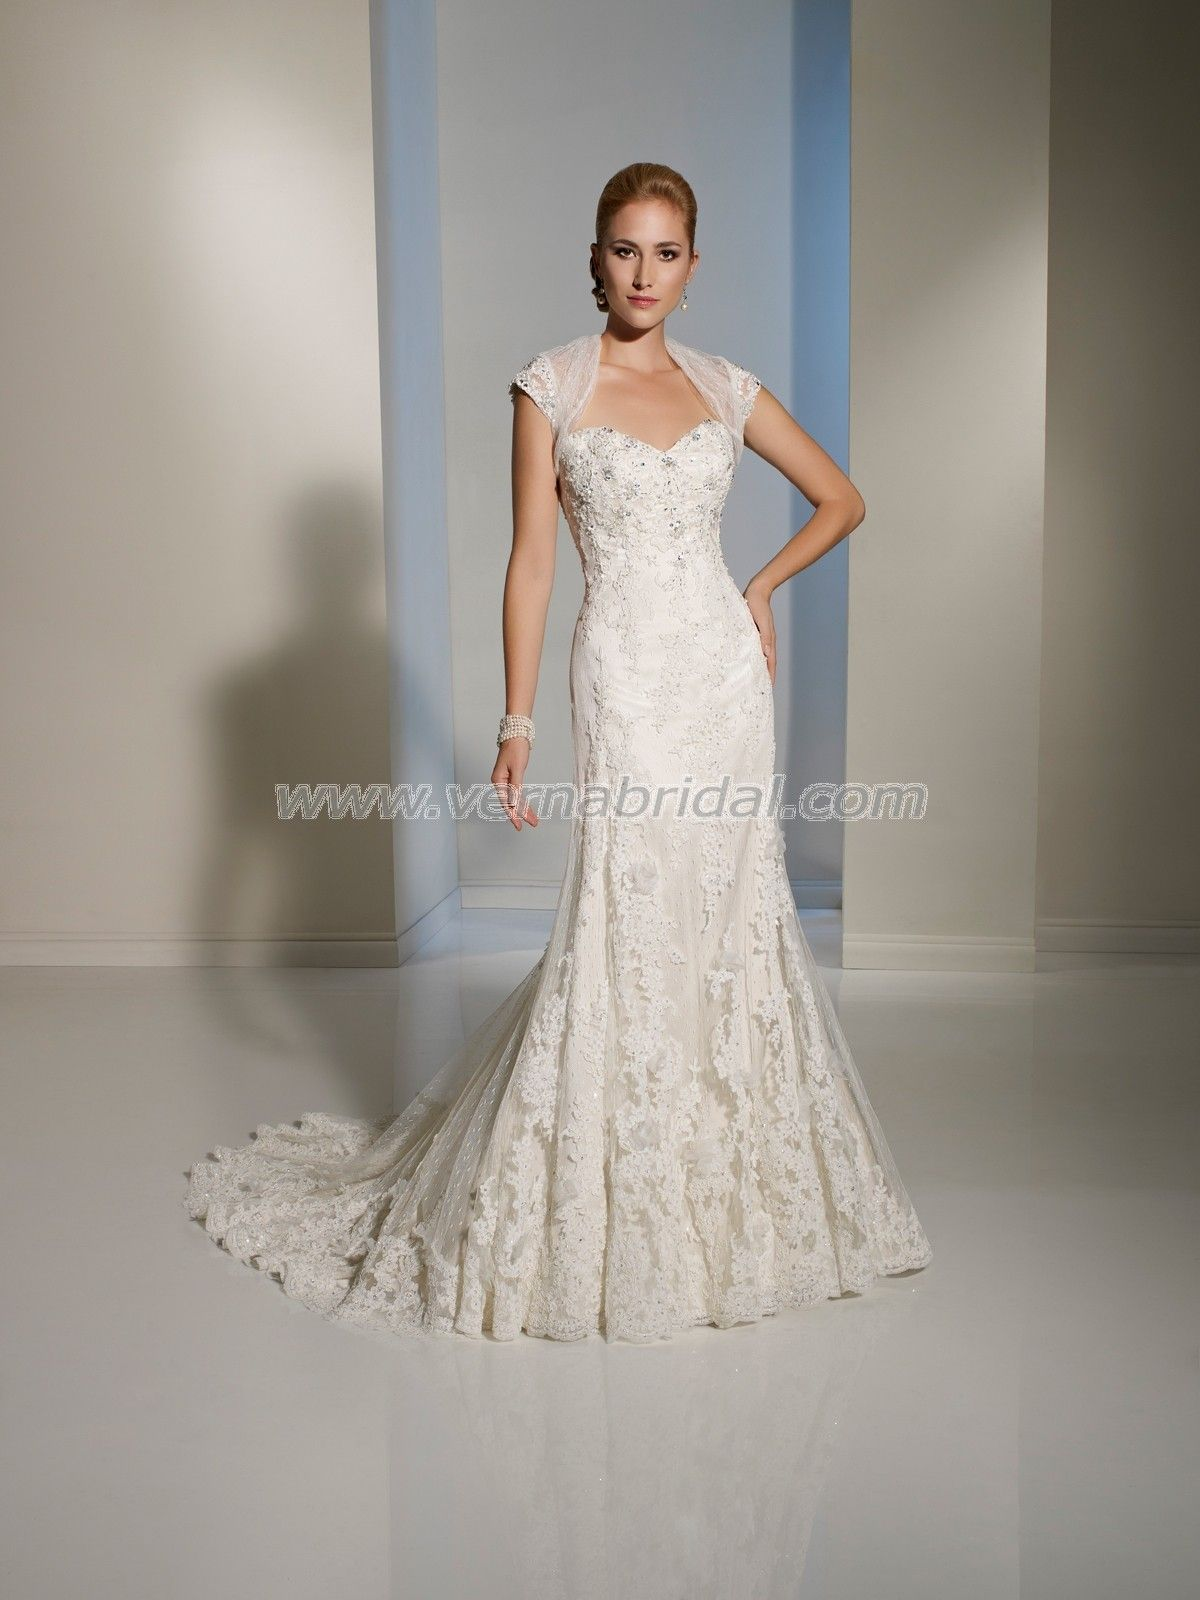 This neckline and sleeve in cocktail length wedding dresses